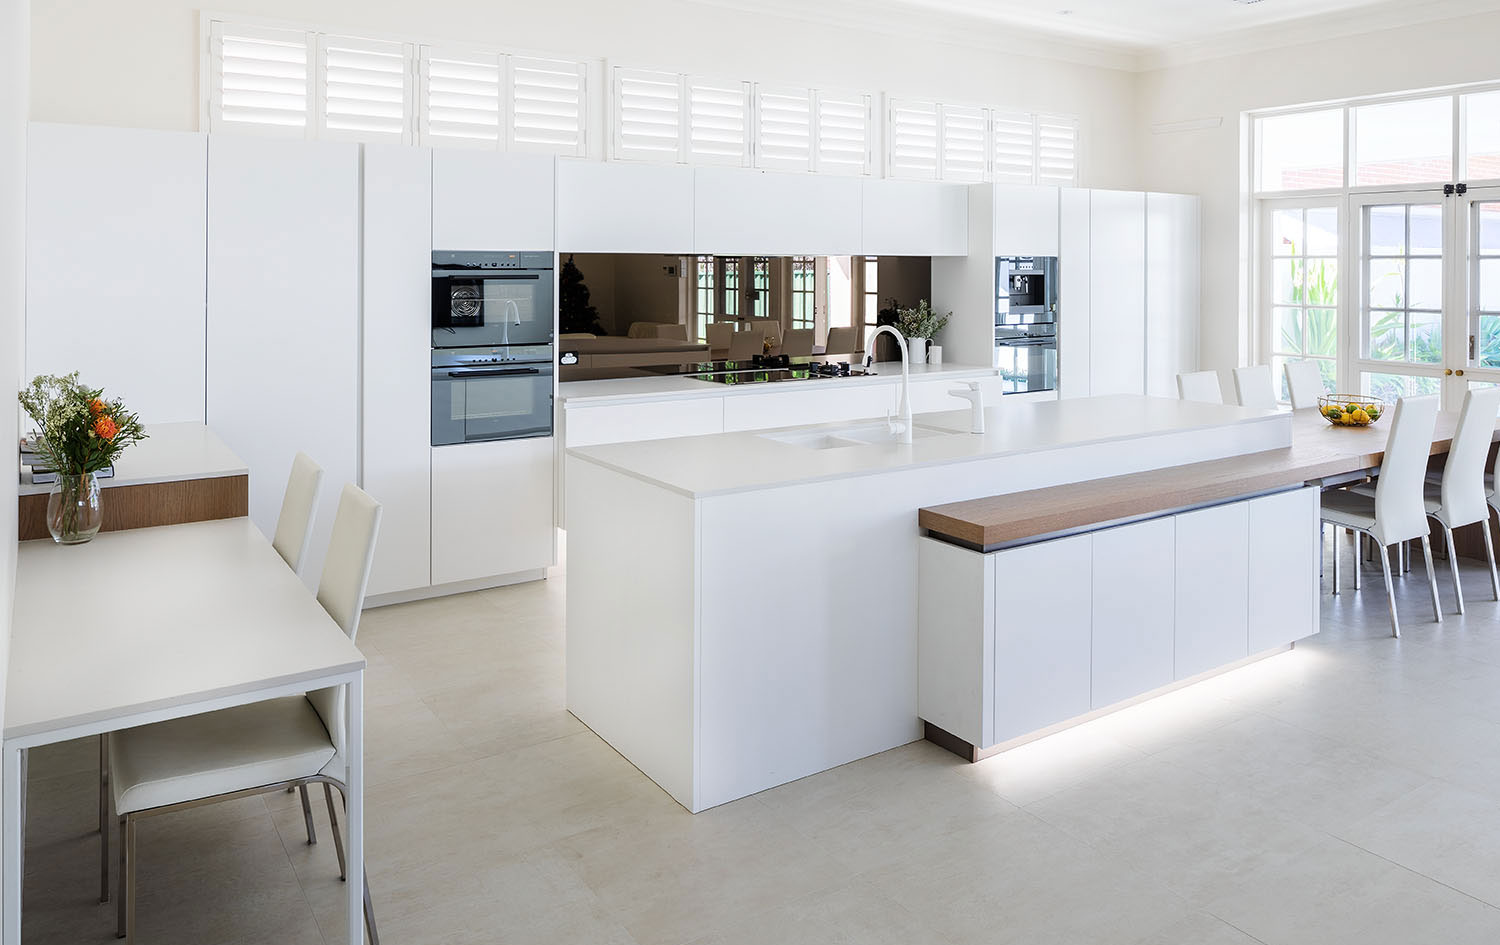 Exceptionnel Where Modern And Traditional Meet: An Elegant Kitchen Design